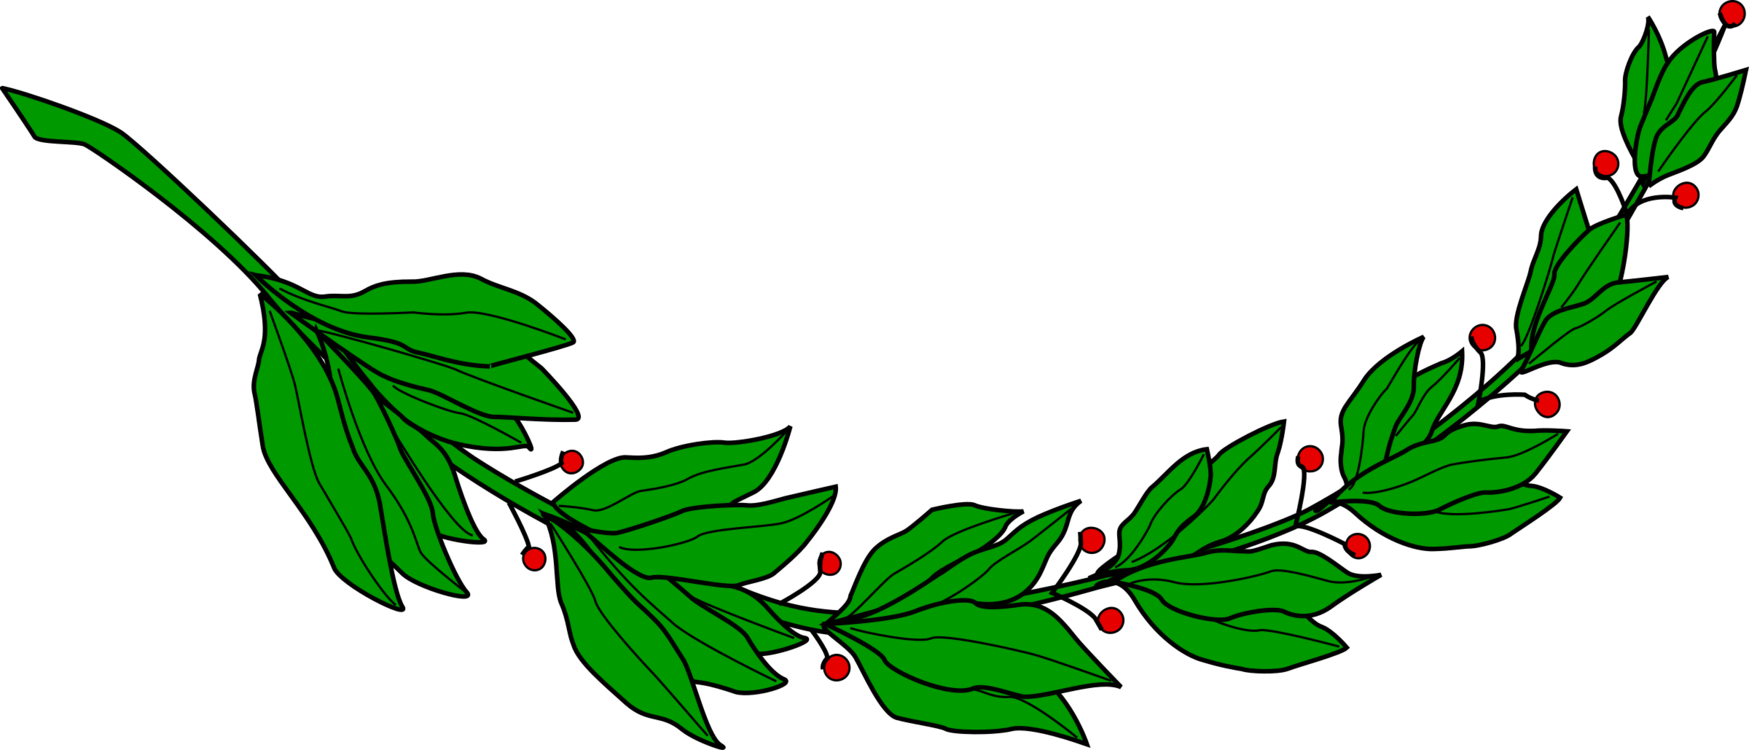 Laurel drawing bay. Wreath computer icons branch